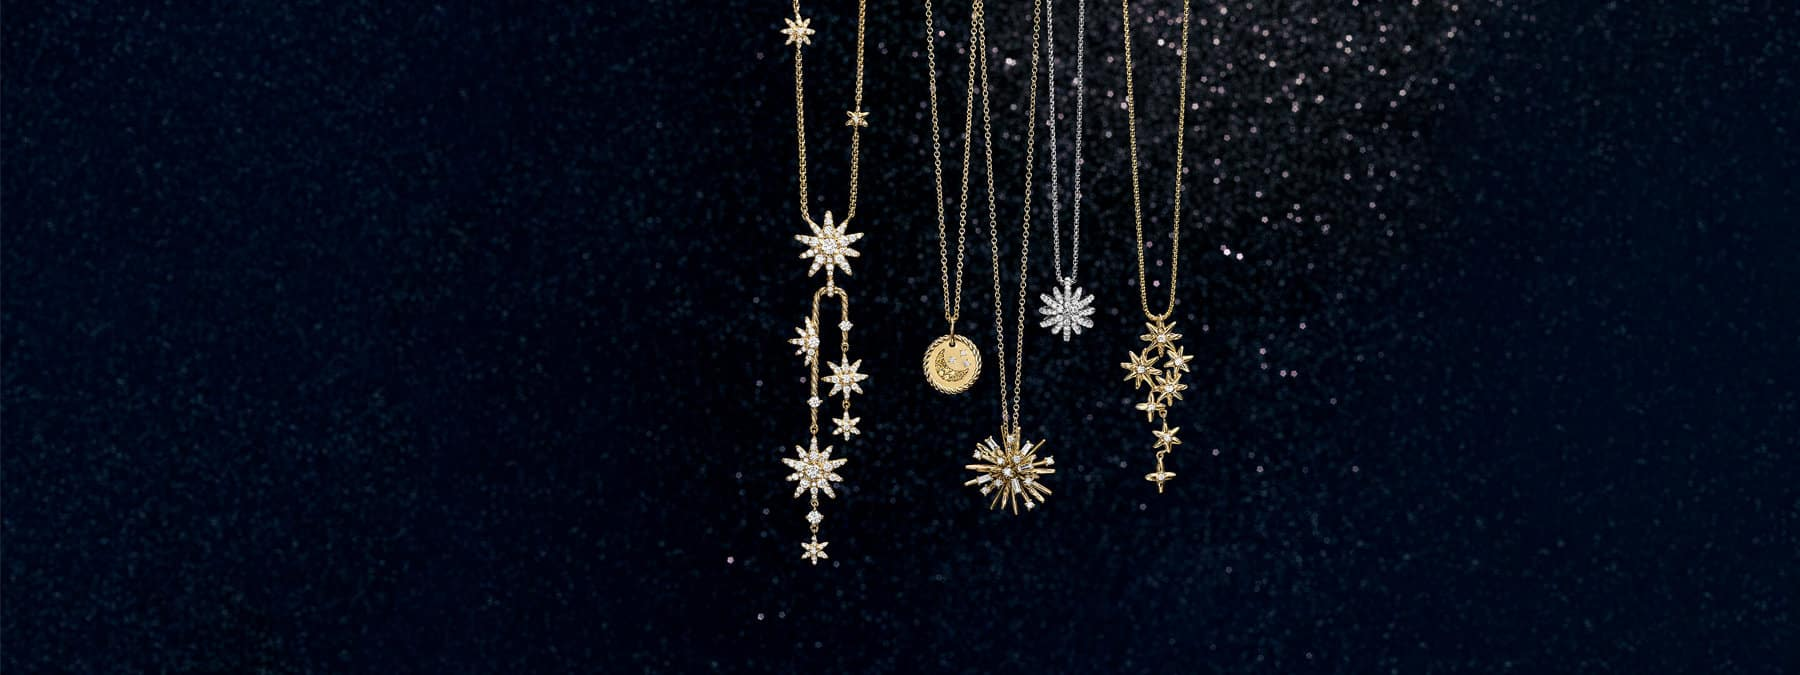 A color photo shows five David Yurman star-shaped or celestial necklaces for women from the Starburst, Cable Collectibles and Supernova collections suspended before a black glittery backdrop. Second from the left is a Cable Collectibles necklace whose charm features a yellow sapphire crescent moon and pavé diamond stars. The women's necklaces are crafted from 18K yellow gold with pavé white diamonds or 18K white gold with pavé white diamonds.